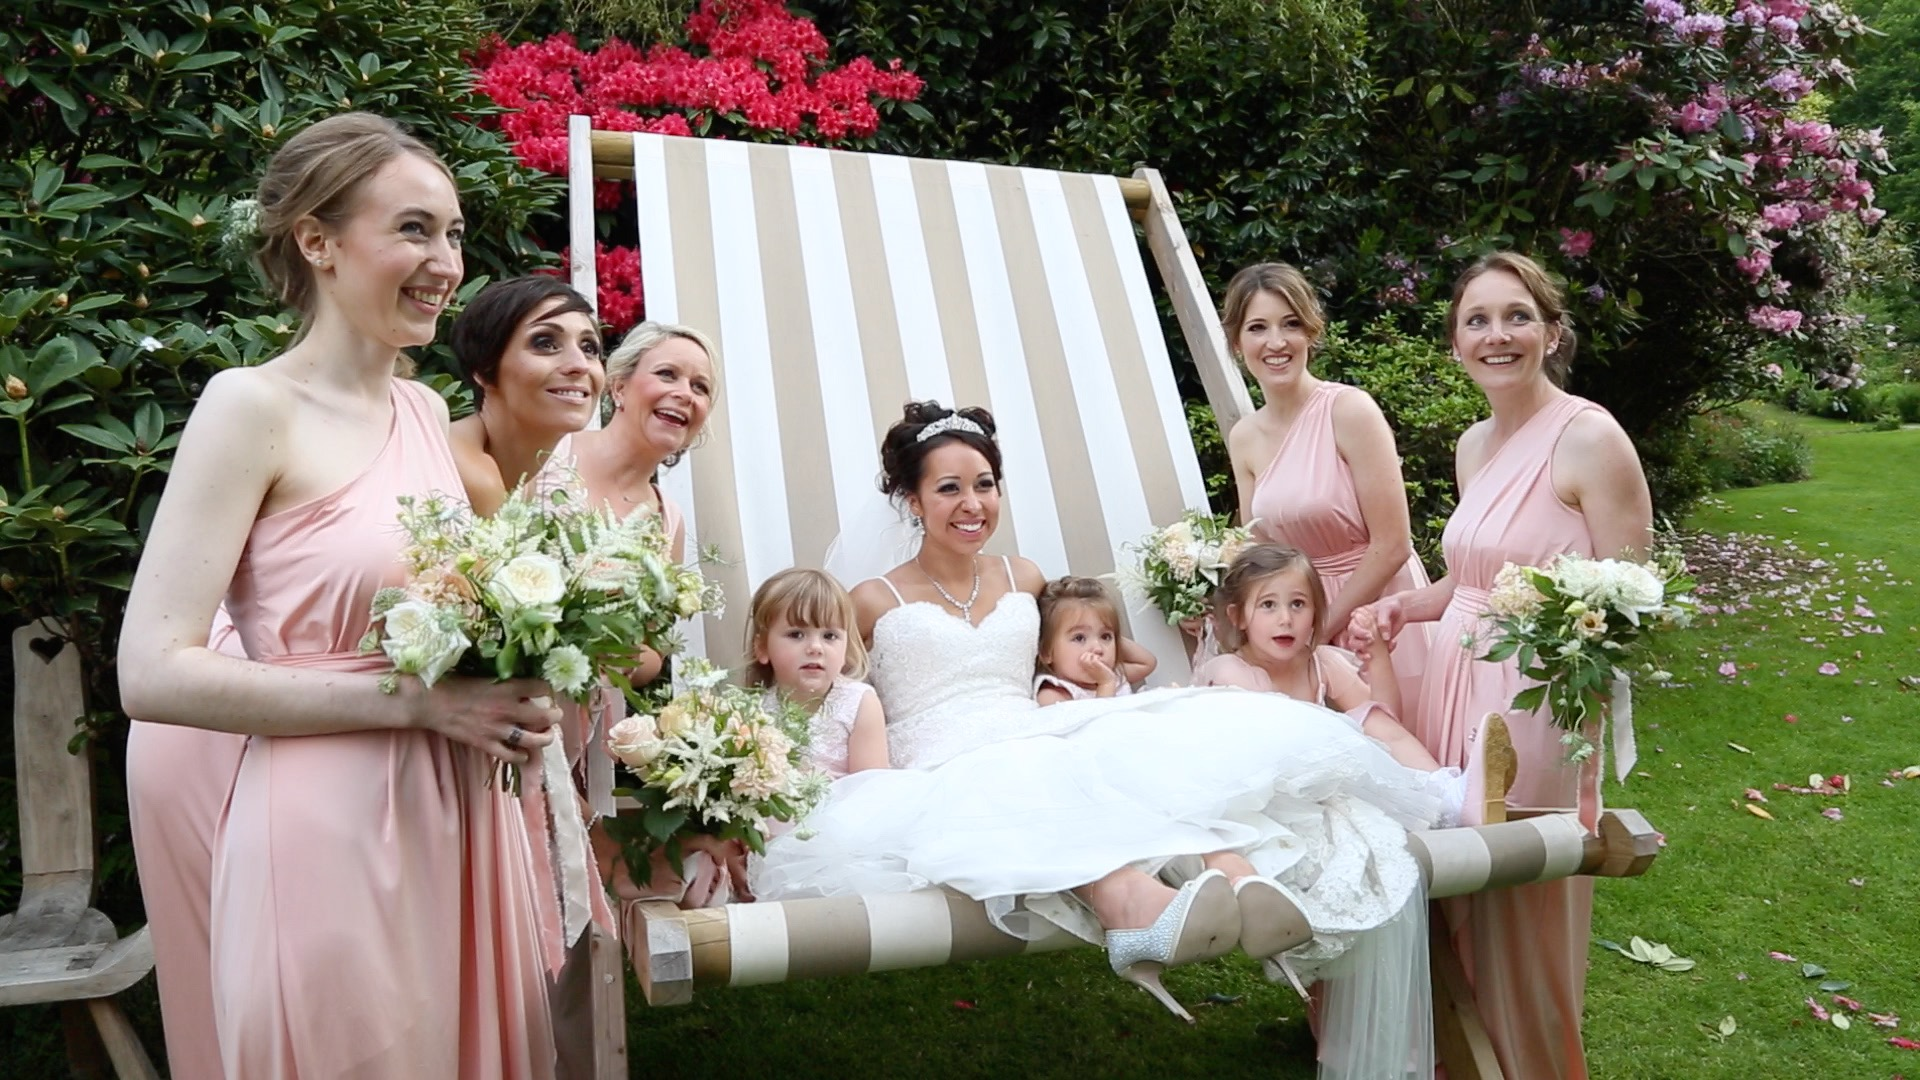 Giant Deckchair Wedding Prop.jpg